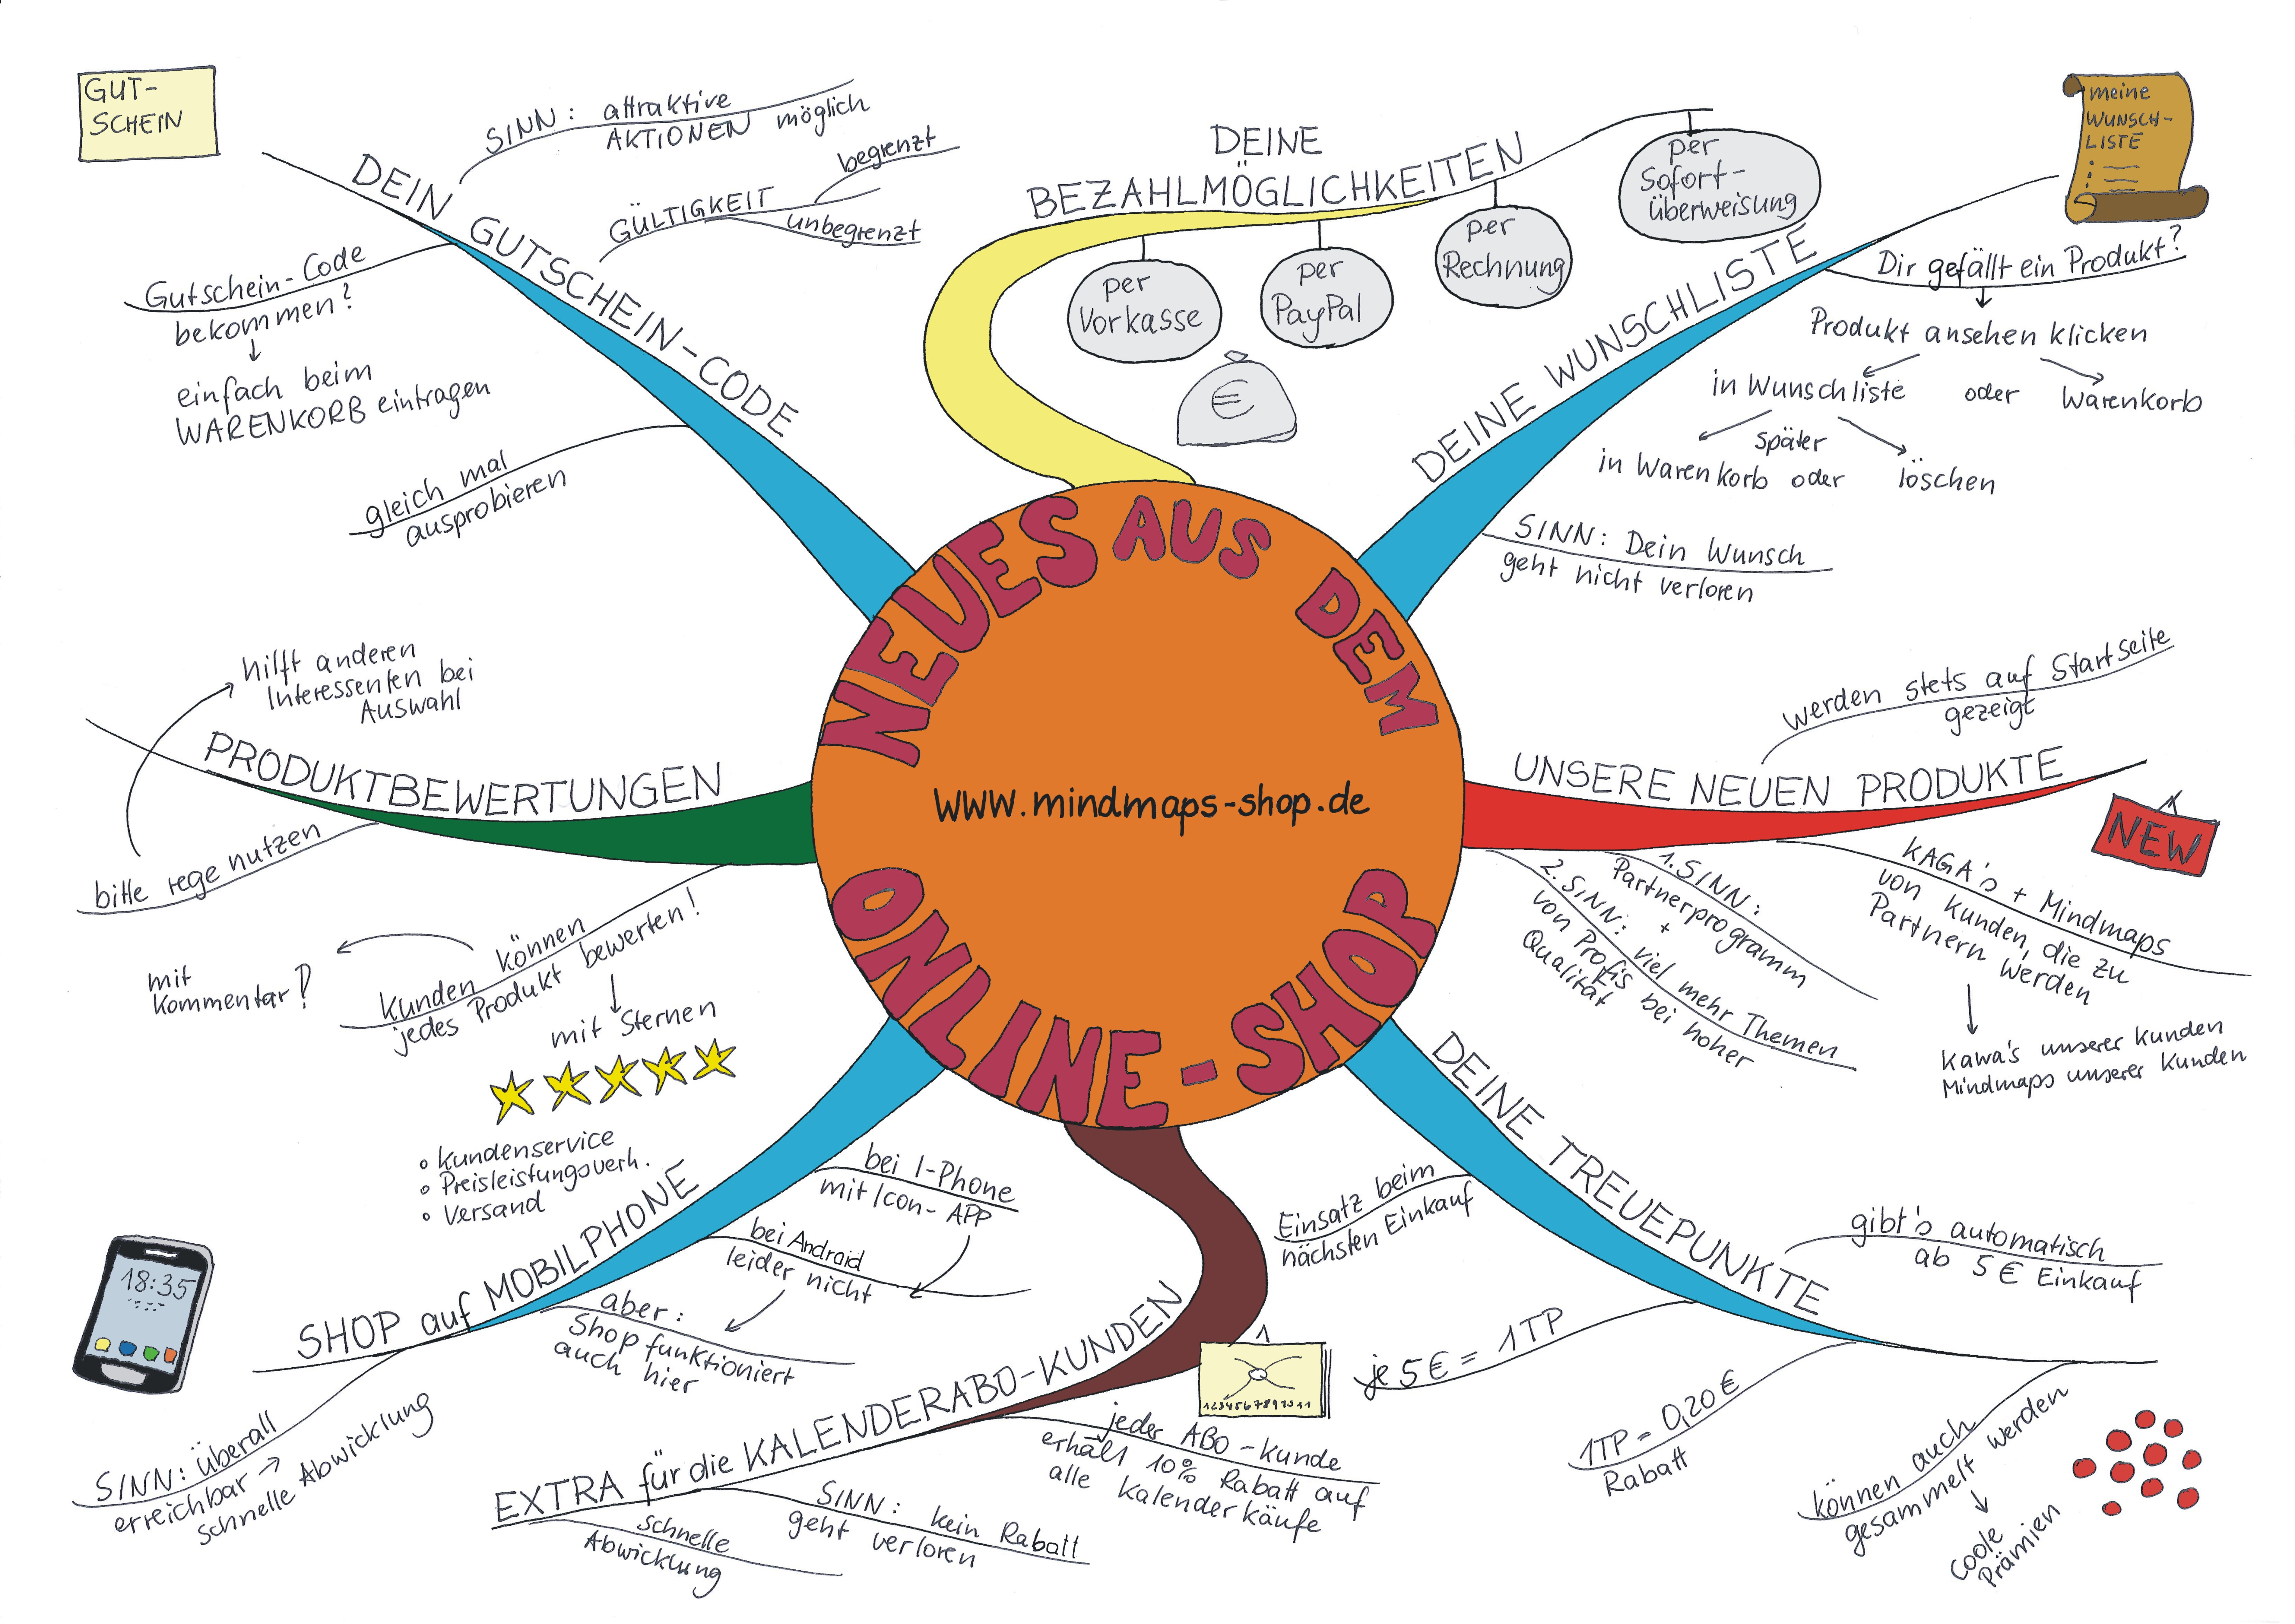 mind mapping online with Mindmapping In Anwendung Neuestes Vom Onlineshop on Driving More Valuable Customer Journeys With Emotion Mapping Part 1 further Mind Mapping Software Review furthermore Les 7 Merveilles Du Monde Nouvelles additionally DTxX moreover Why Blogging Will Be Crucially Important For Interior Designers In 2013.